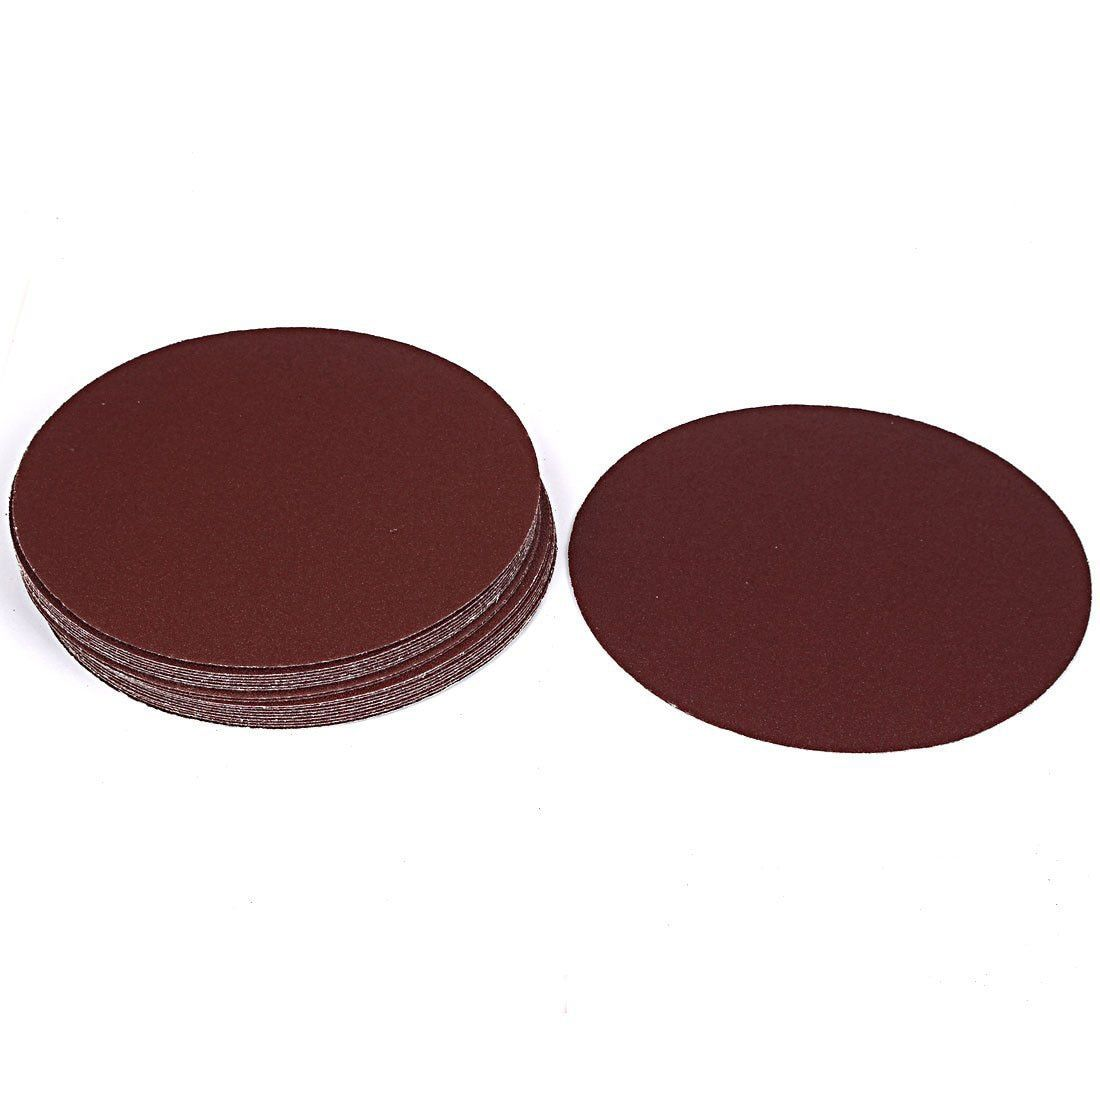 New Grinding Polishing Hook And Loop Sanding Disc Sandpaper 80 Grit 7 Inch Dia 20pcs Attention Valid Discount In 2020 Sanding Sandpaper Woodworking Machinery